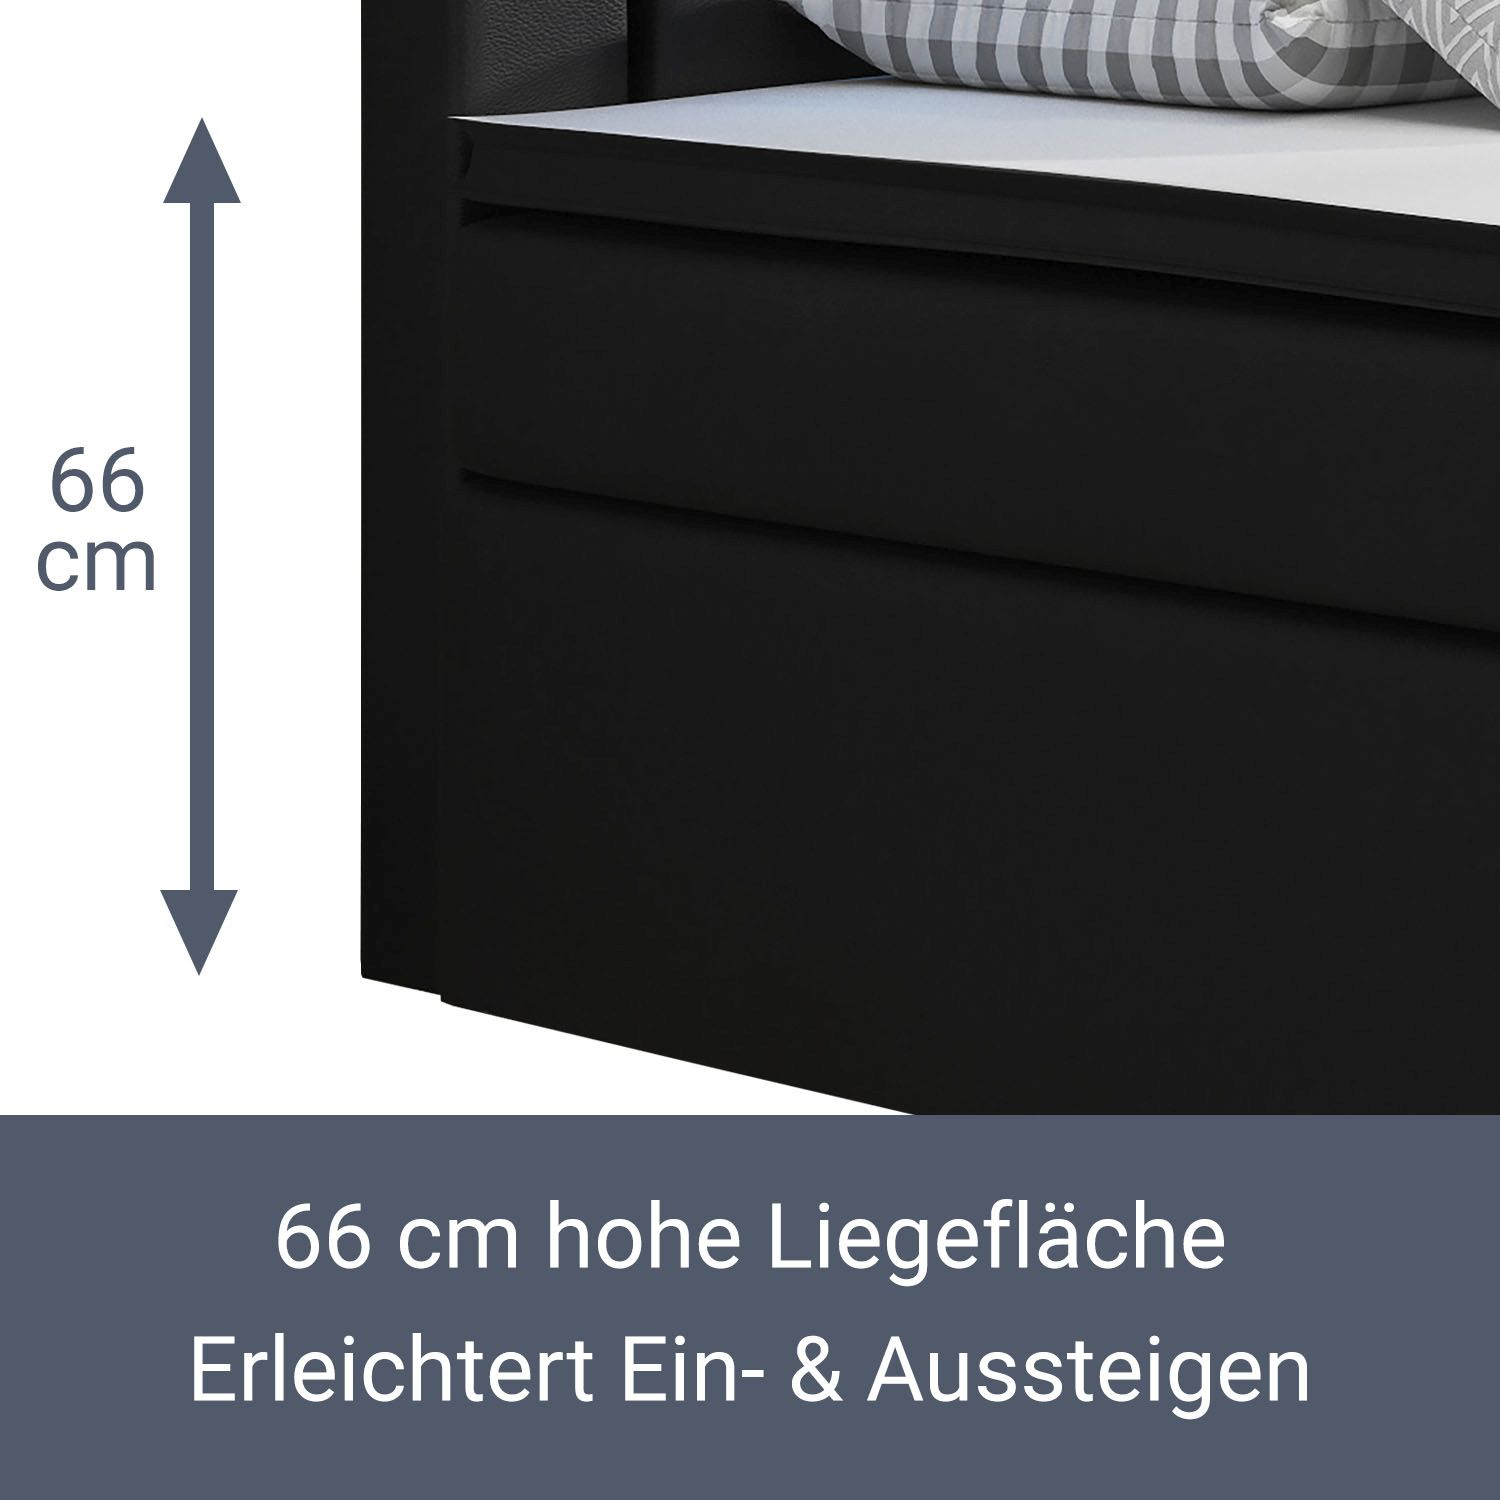 boxspringbett hotelbett federkern ehebett design led topper kunstleder artlife ebay. Black Bedroom Furniture Sets. Home Design Ideas